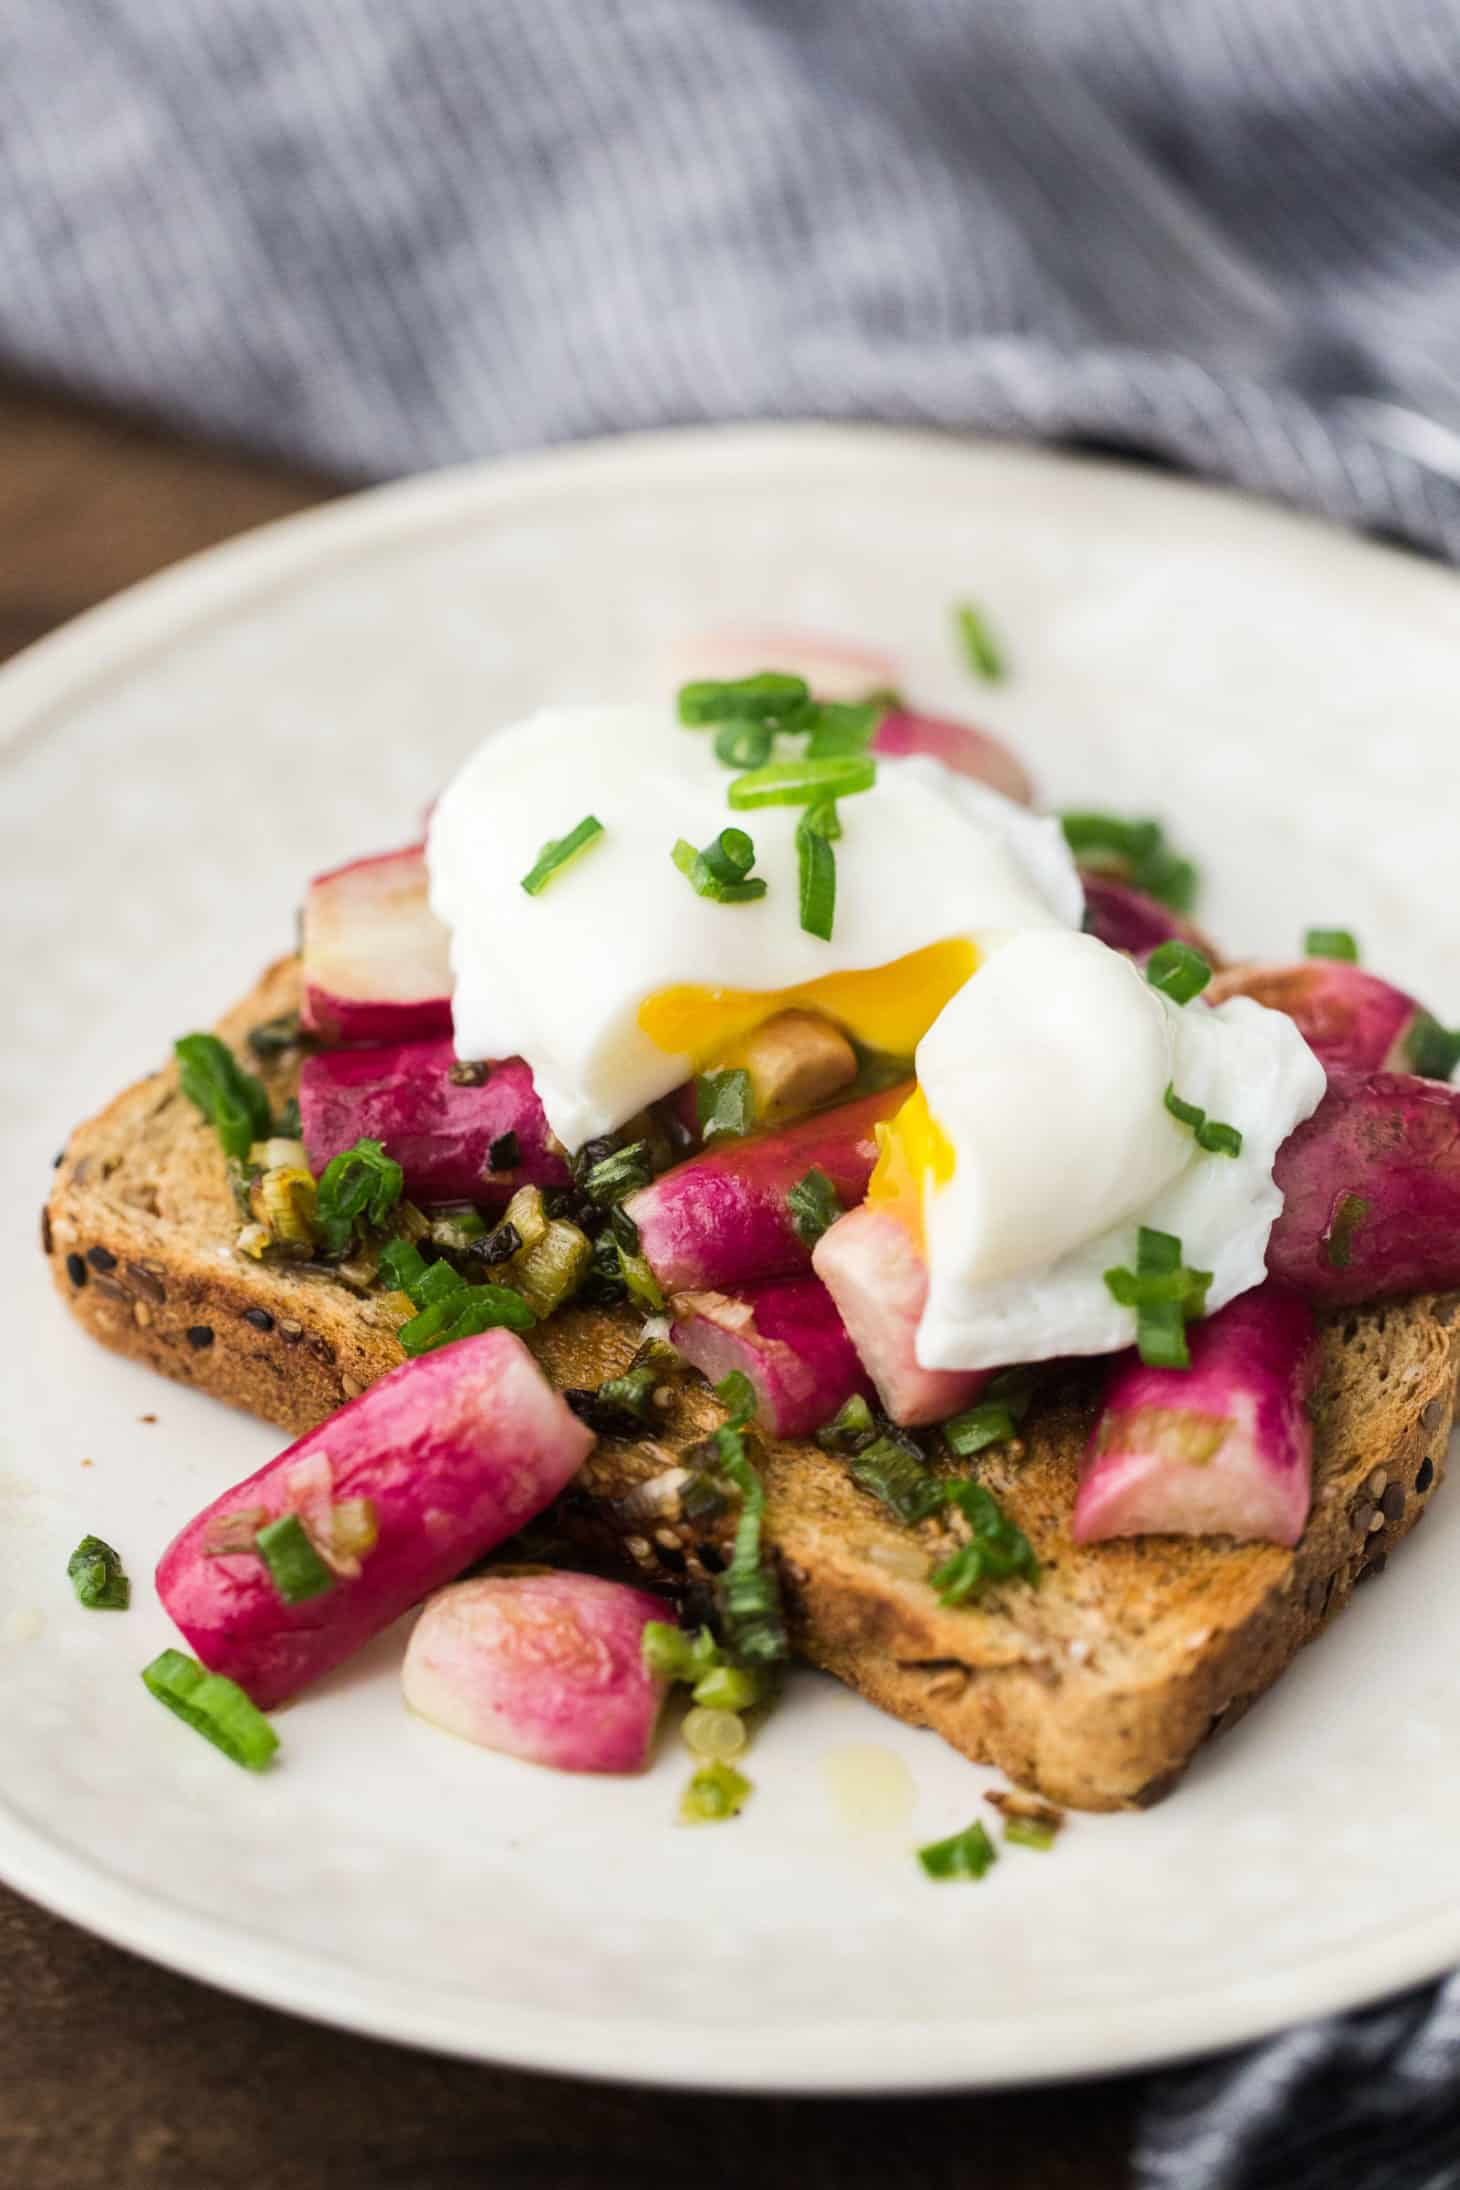 Buttered Radishes and Spring Onions with a Poached Egg